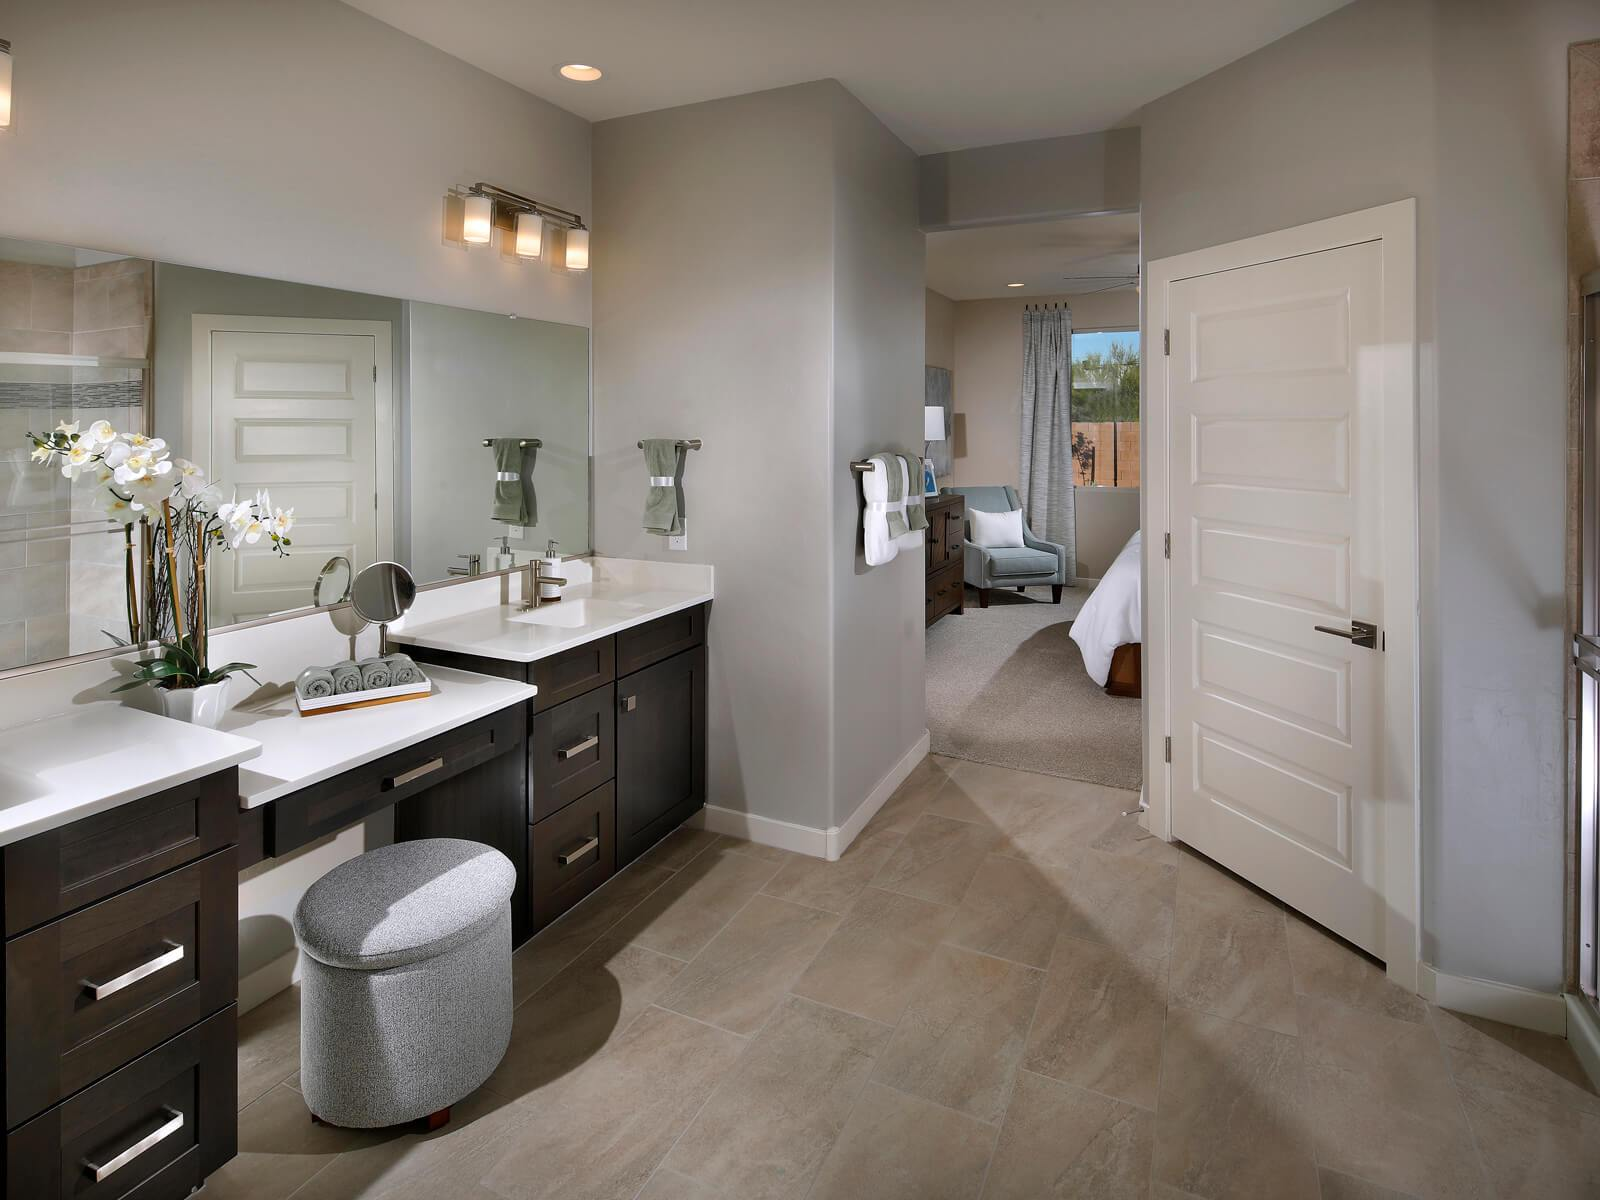 Bathroom featured in the Promenade By Meritage Homes in Tucson, AZ